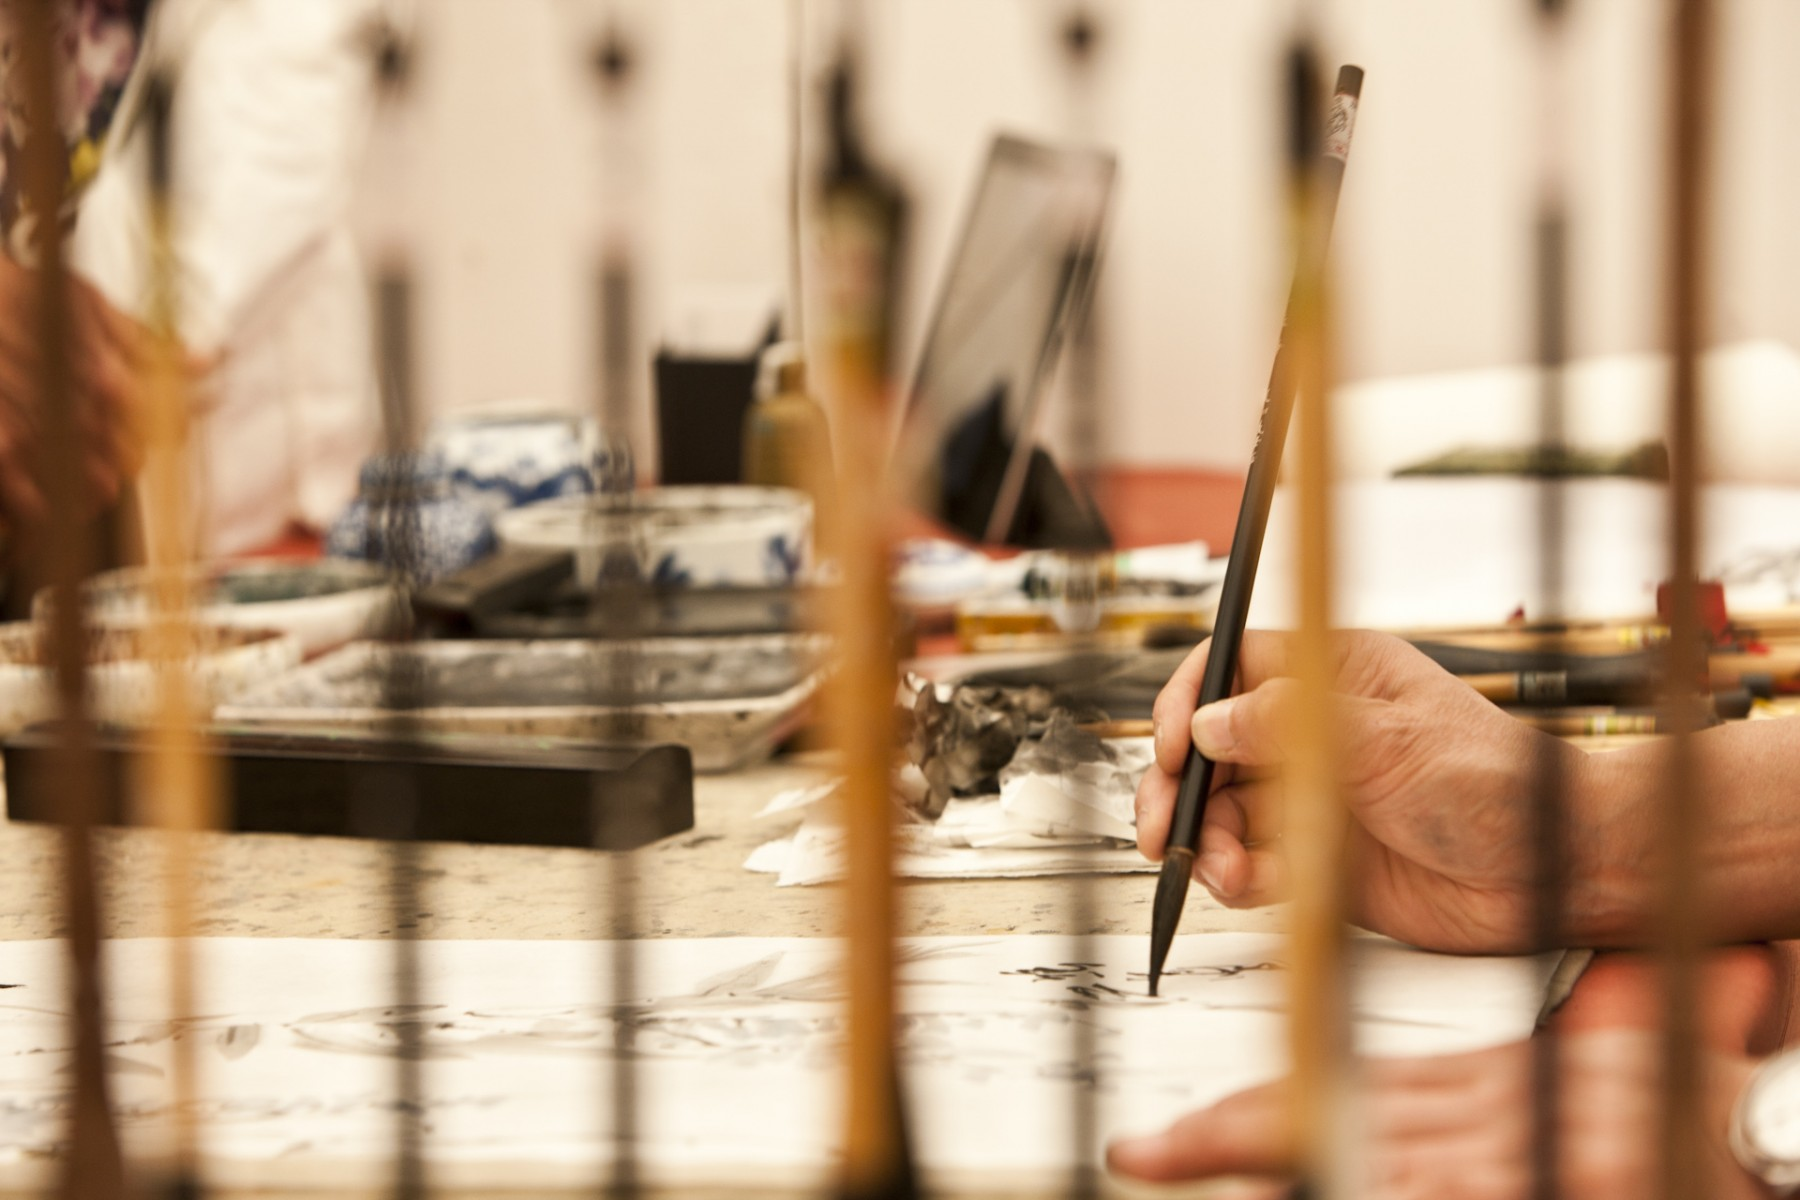 Traditional Chinese brush painting demonstrated by Shuhua Jin. Here I used a rack of paint brushes to frame my image giving it a sense of depth. It was shot with a 100mm lens, at f5.6 1/125s, ISO 800